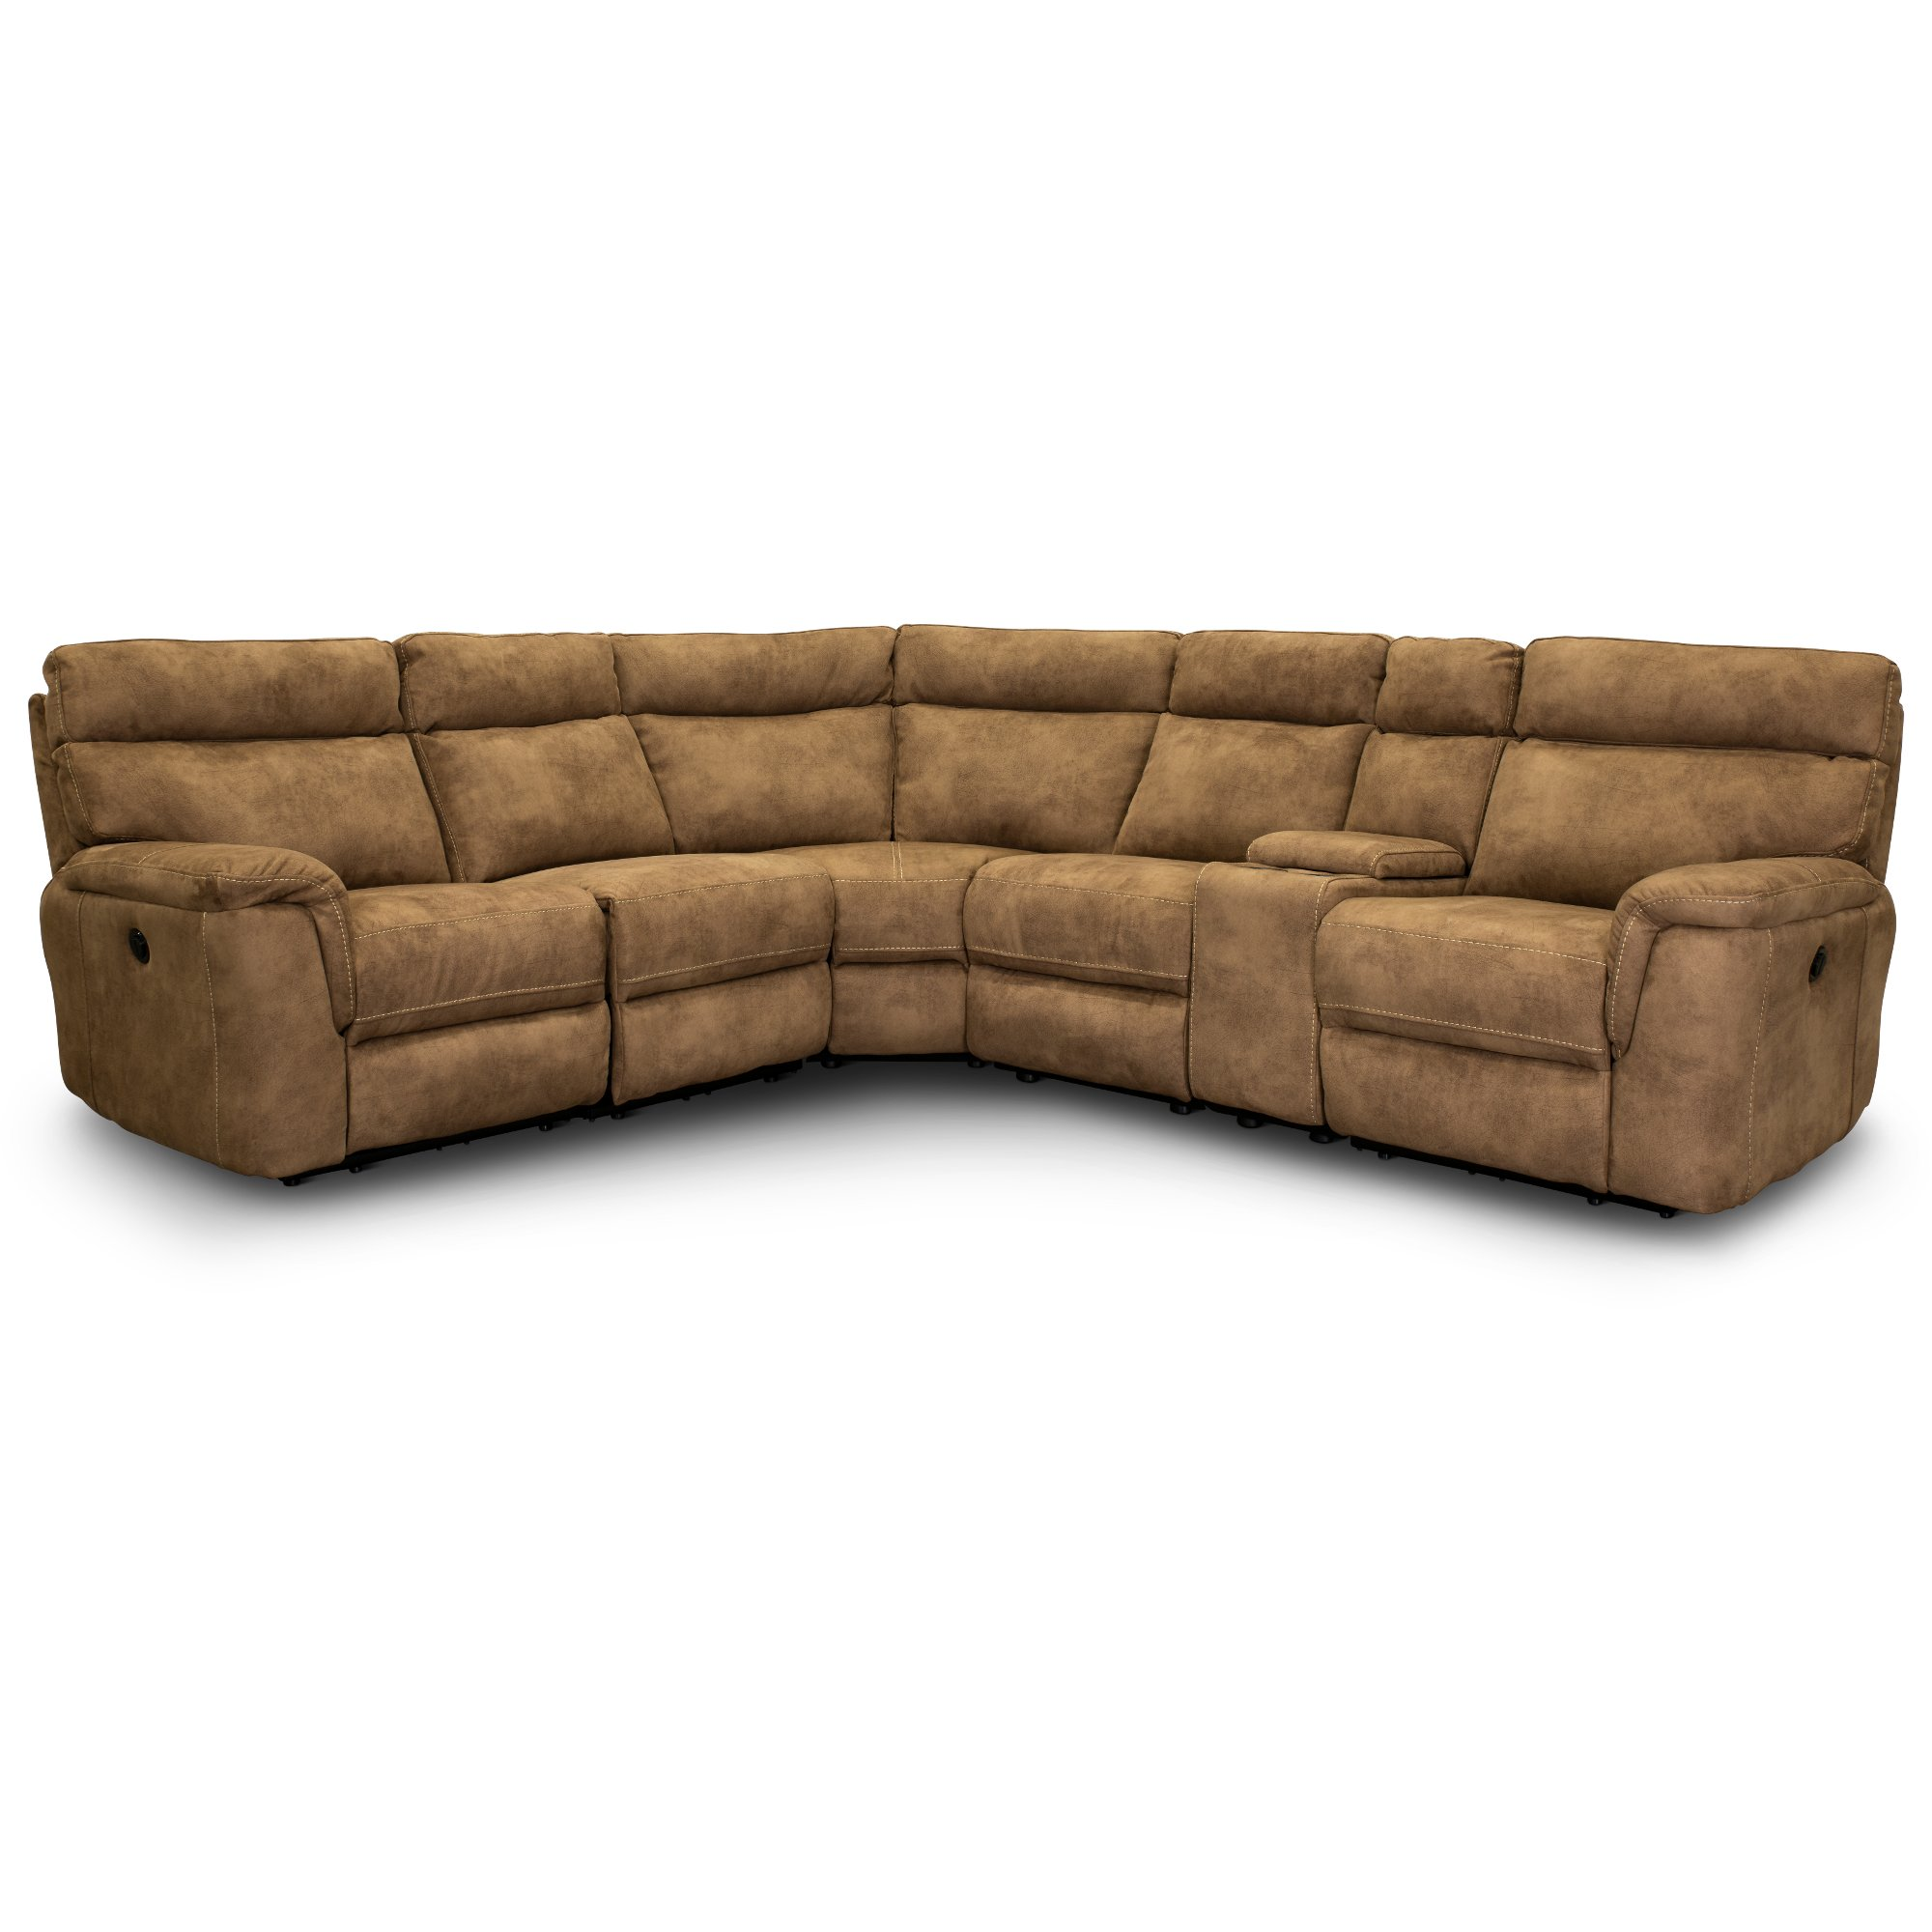 Taupe 6 Piece Power Reclining Sectional Sofa - Maci